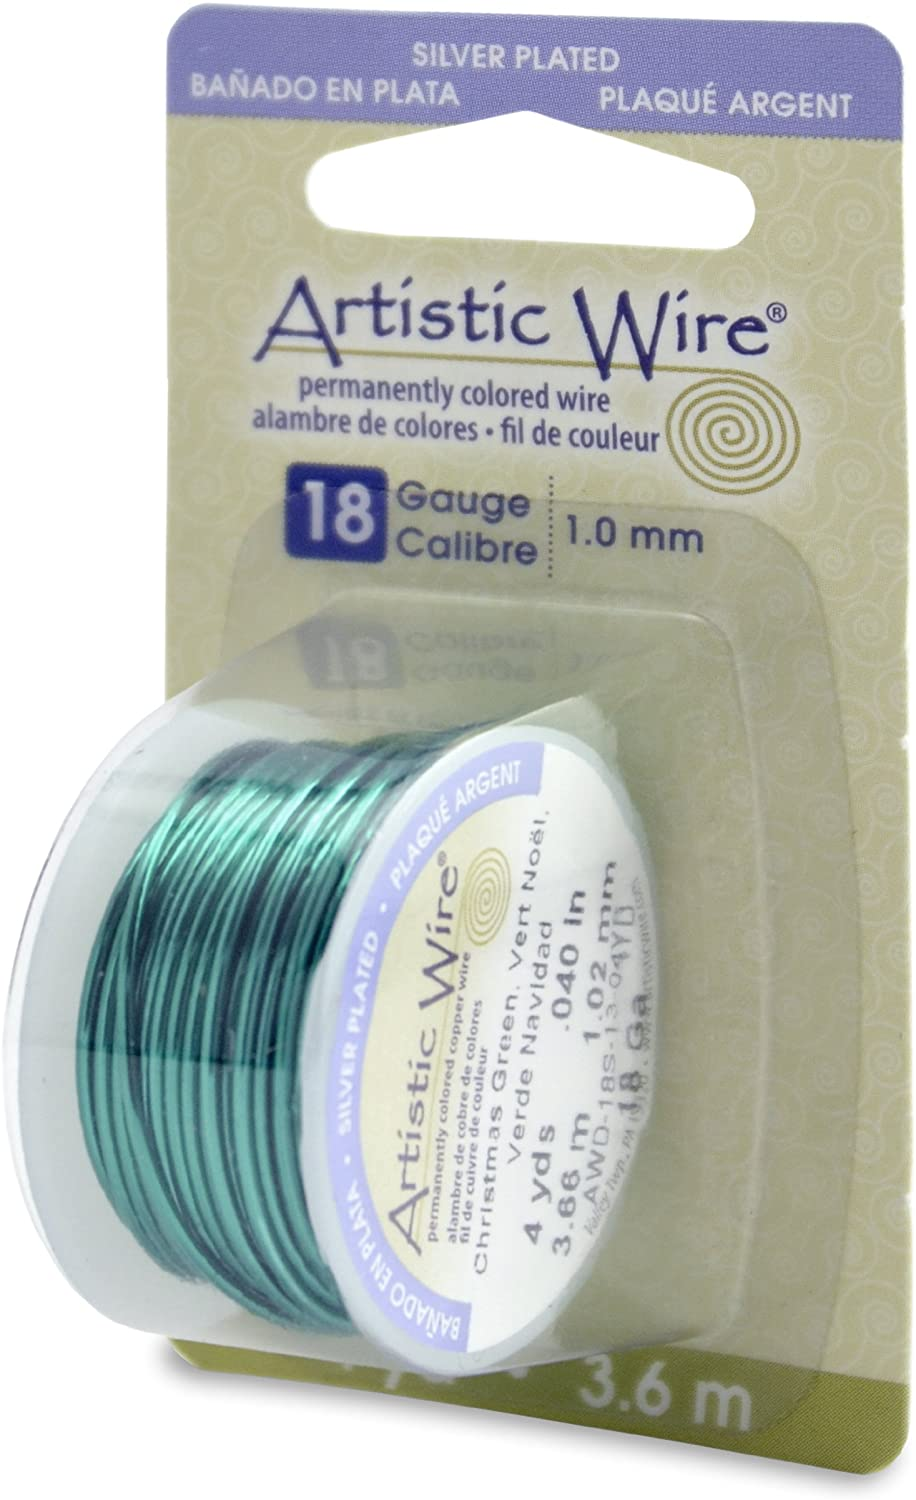 Beadalon Artistic, 18 Gauge, Silver Plated Christmas Color, 4 yd (3.7 m) Craft Wire, Xmas Green